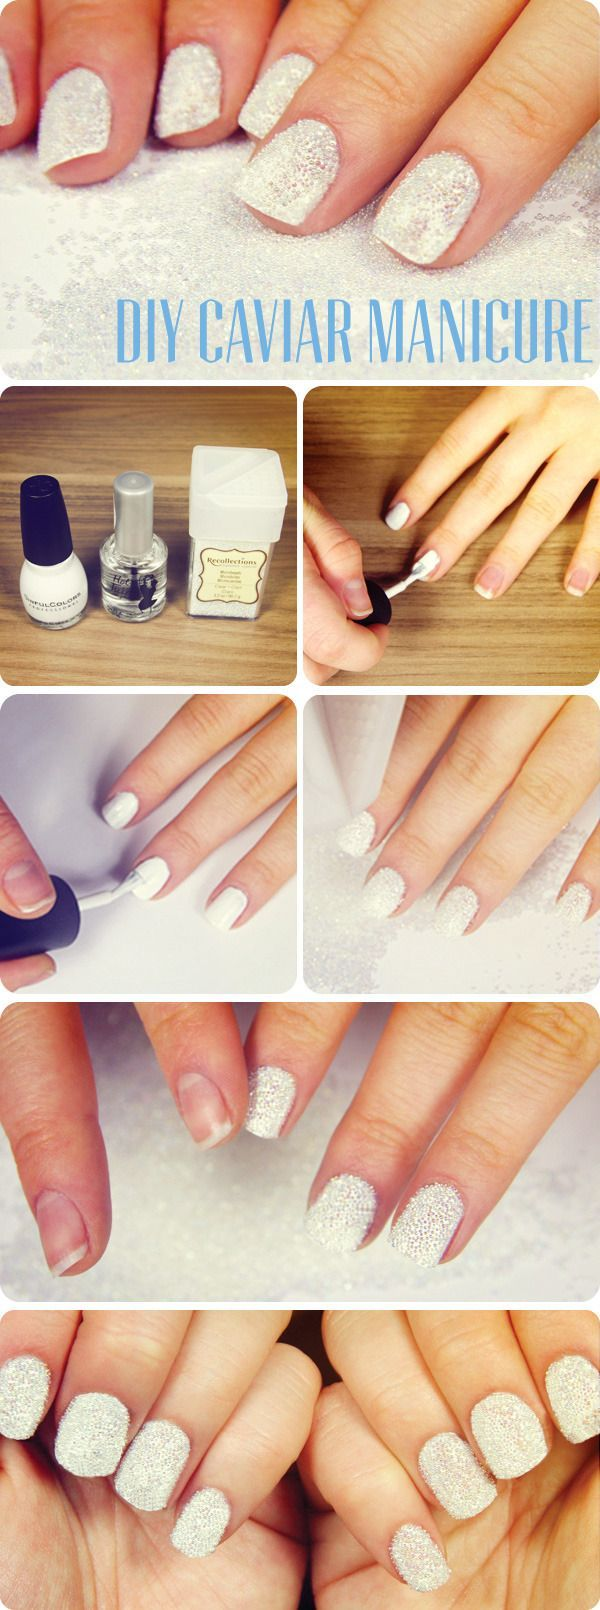 the 25+ best diy caviar nails ideas on pinterest | scotch tape